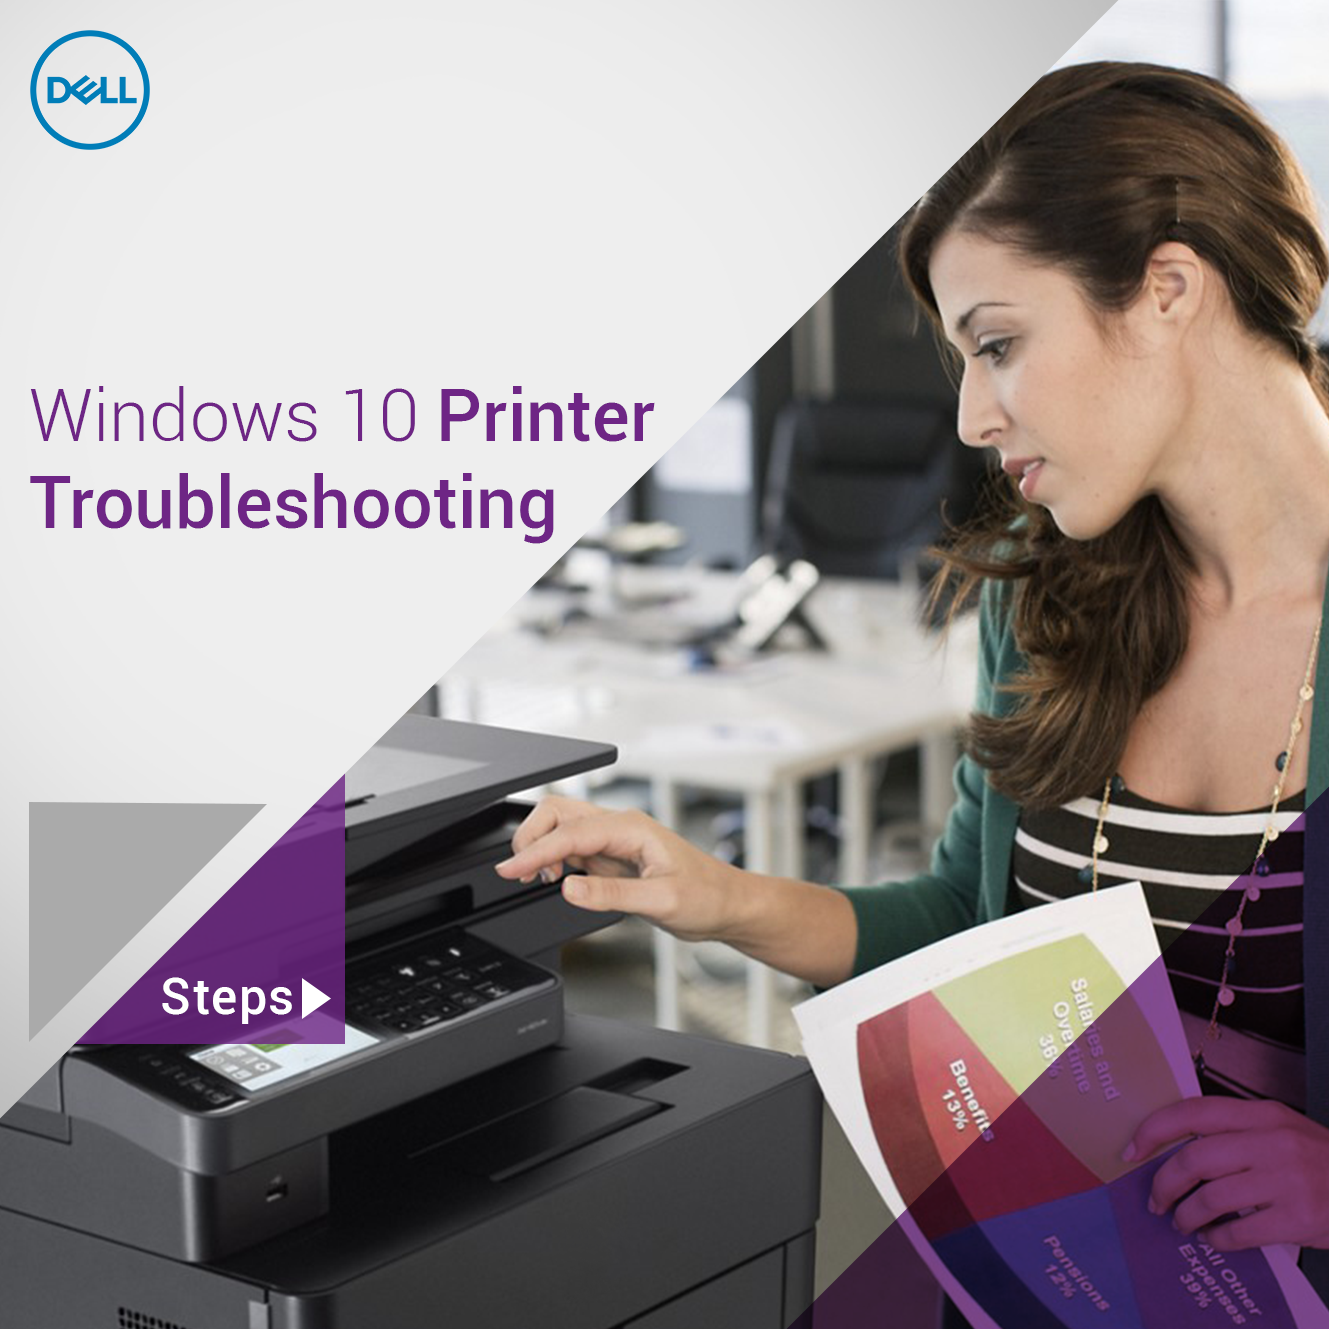 Having problems with a network printer? We can help.